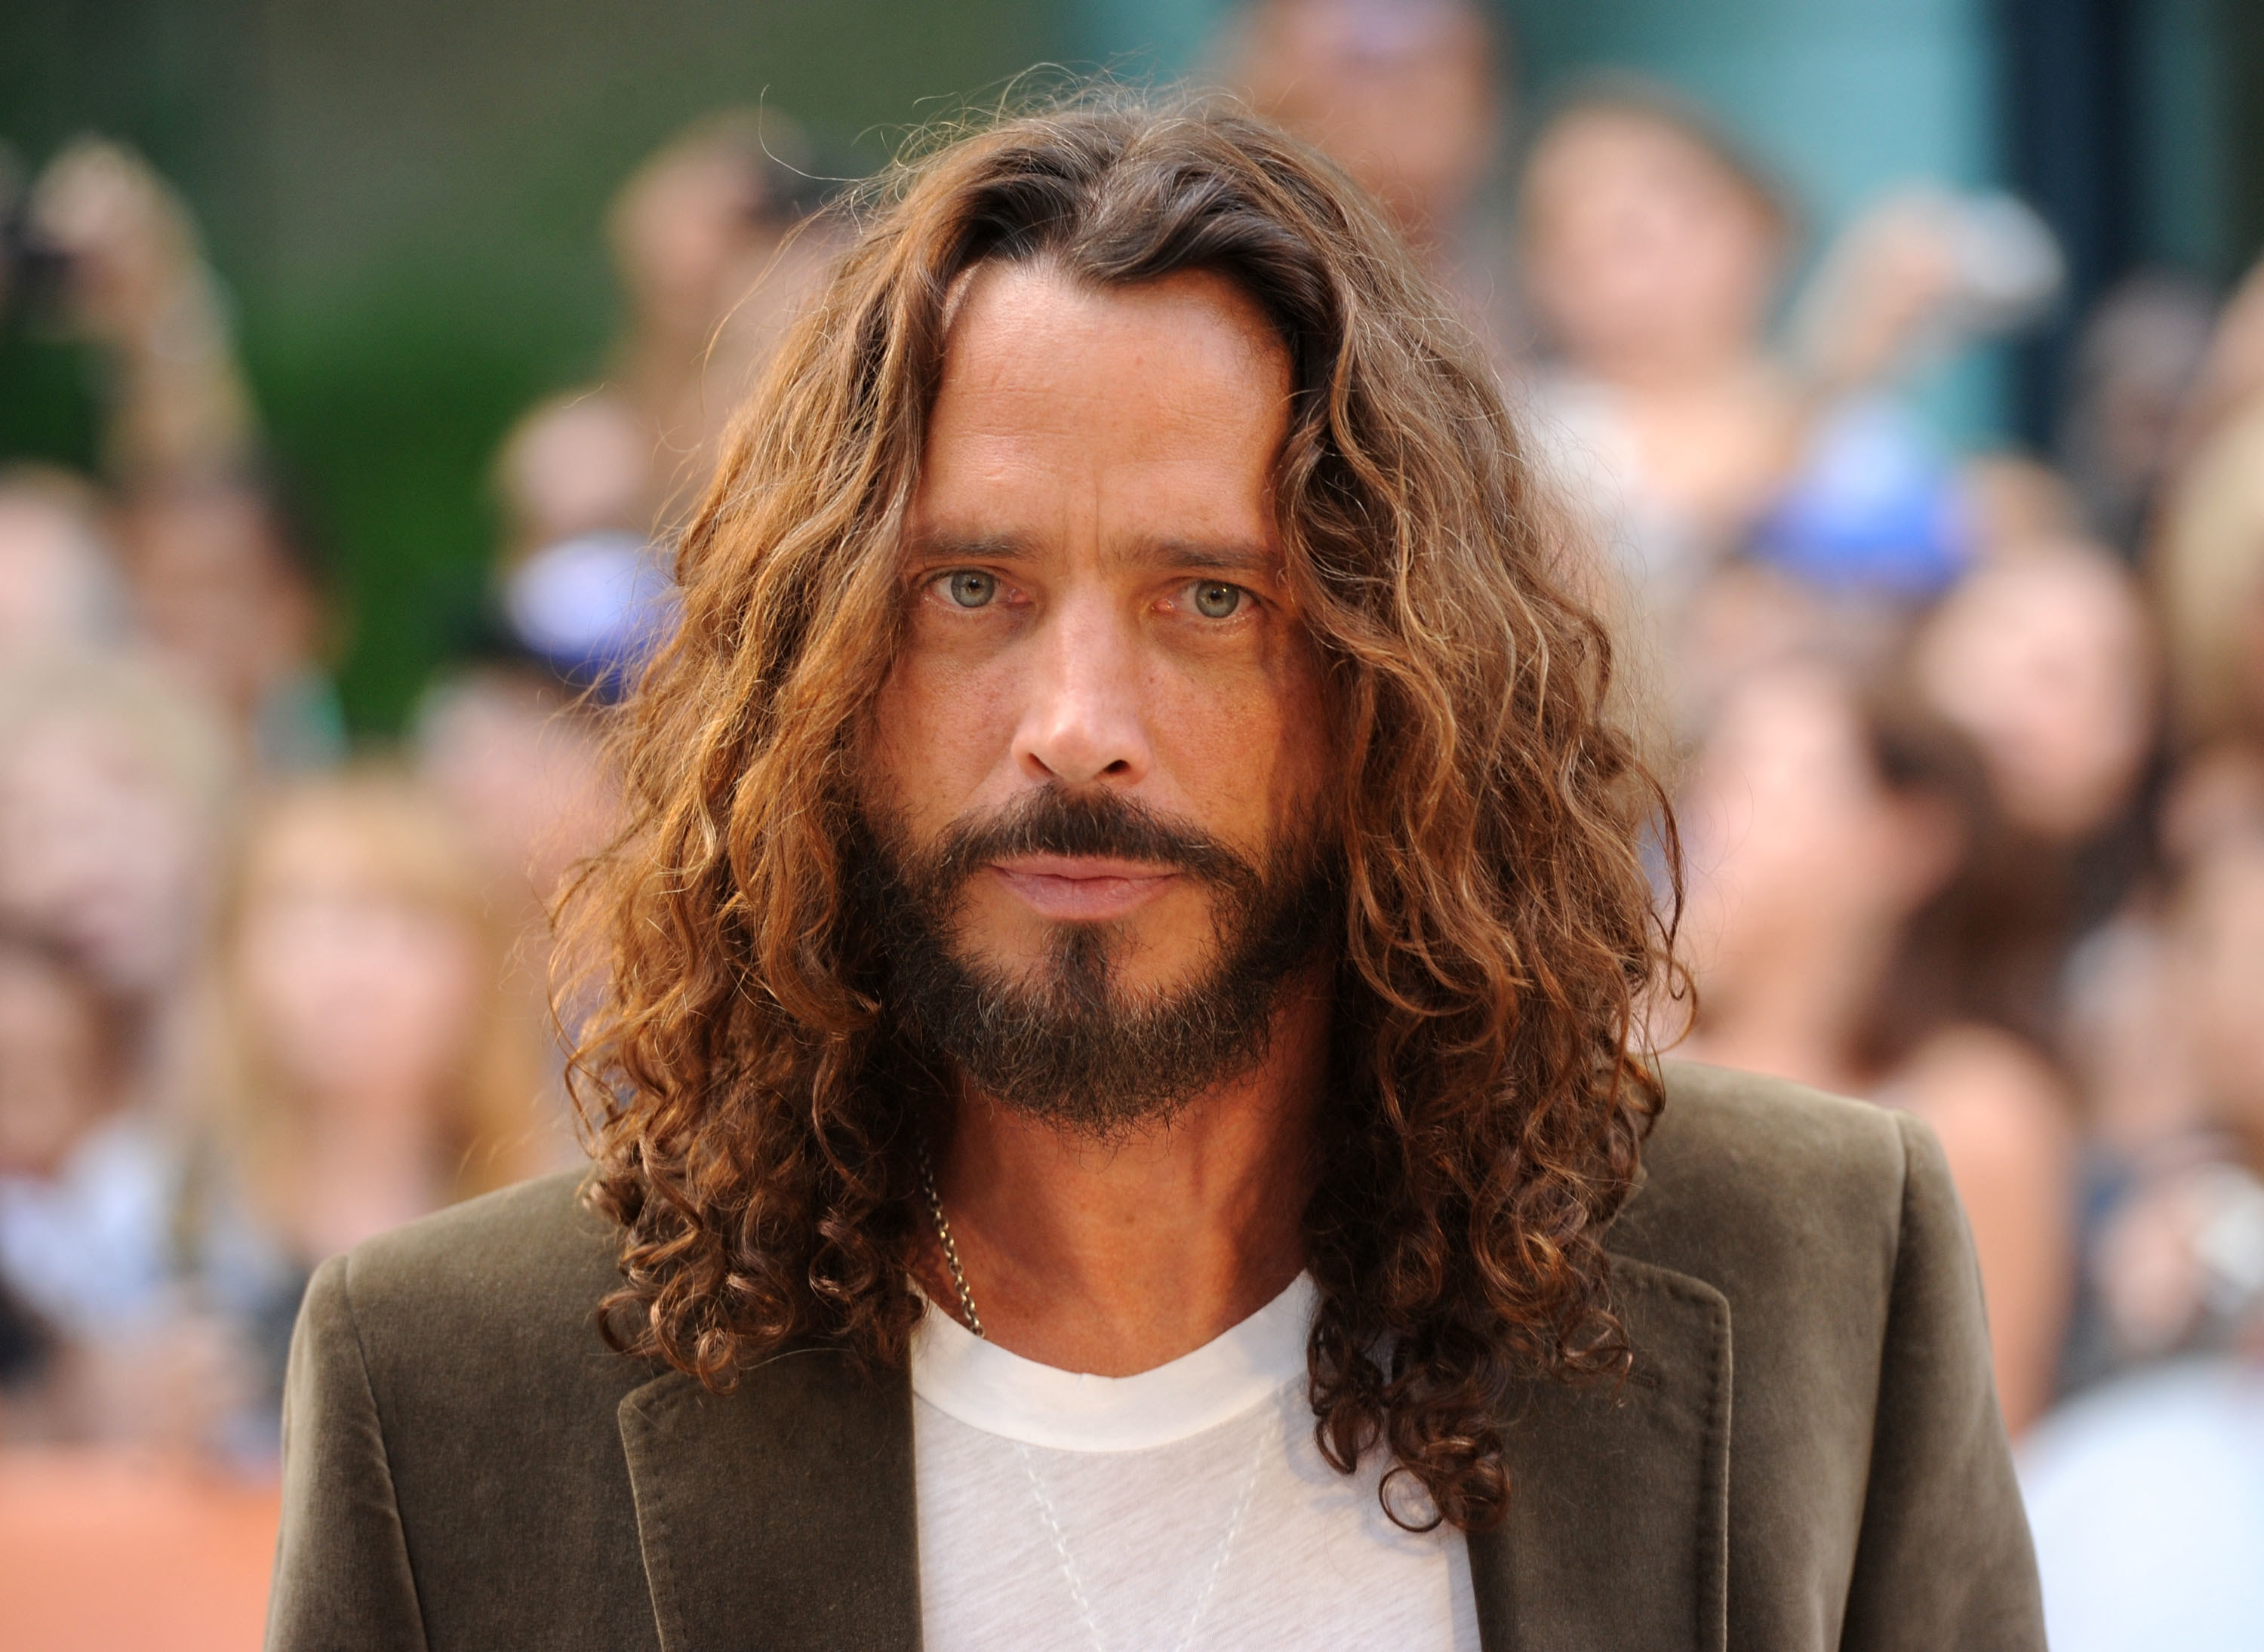 Photo of Chris Cornell with long hair